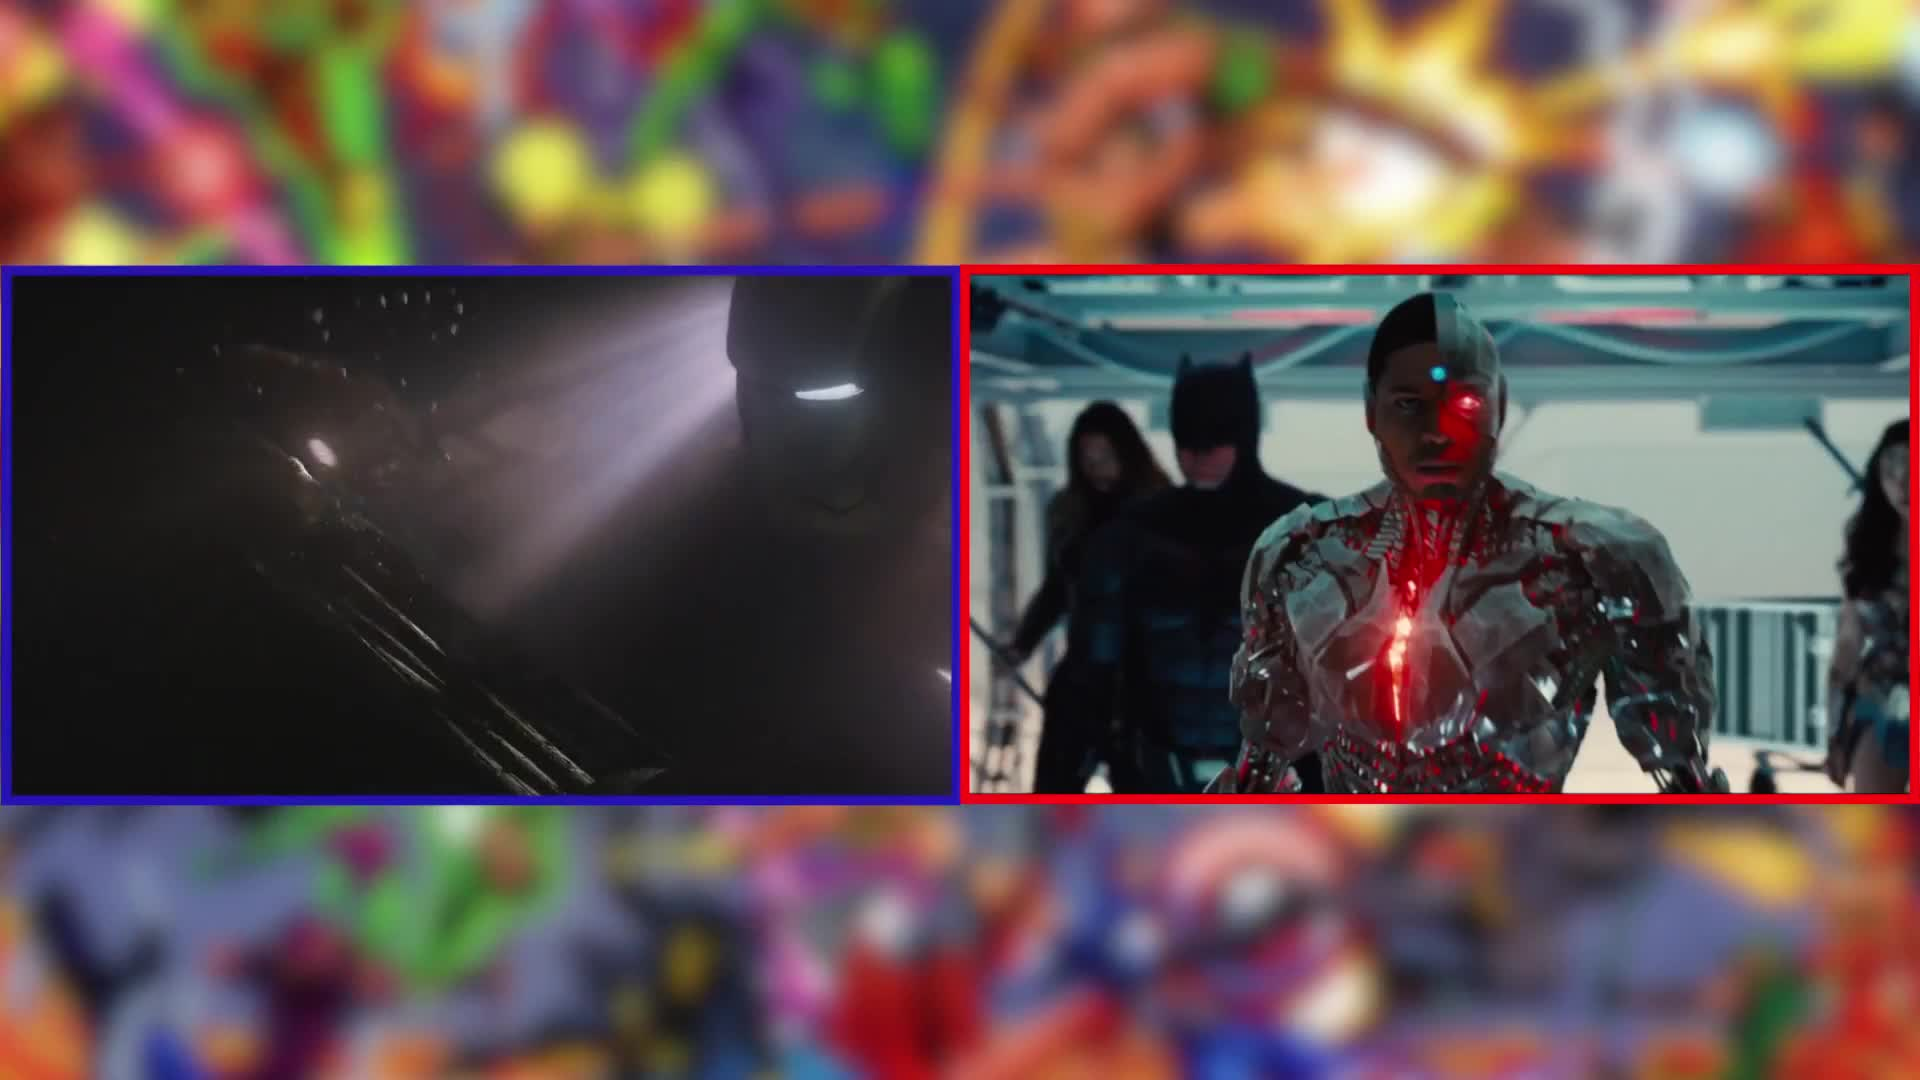 avengers, avengers justice league similarities, joss whedon, justice league avengers similarities, justice league movie, justice league versus avengers, justice league vs avengers, marvel cinematic universe vs dc extended universe, robert downey jr, superman, zack snyder, Justice League: Every Similarity to The Avengers GIFs